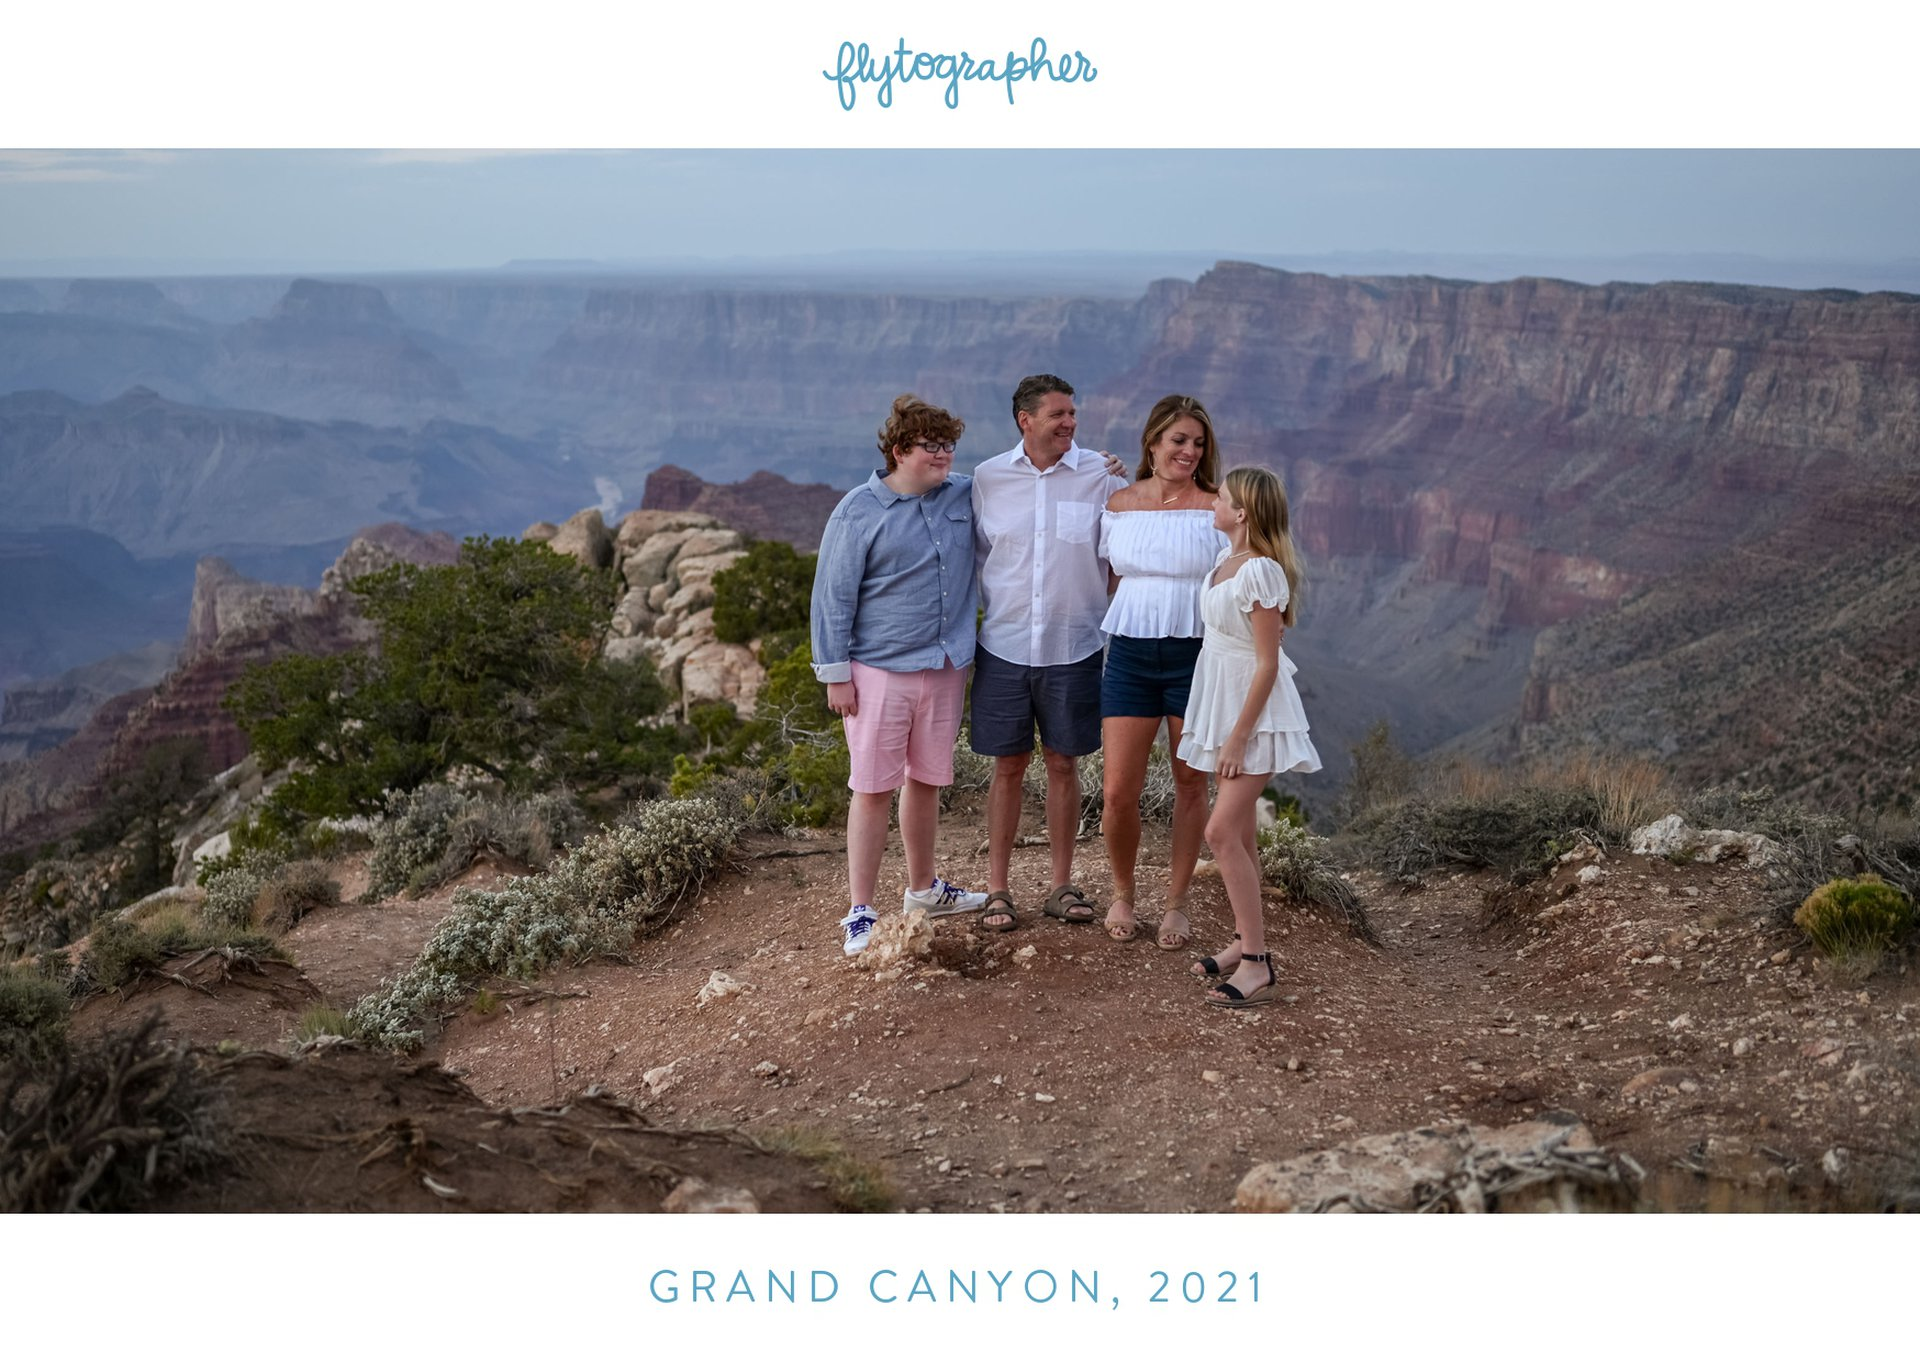 Flytographer Travel Story - Our Amazing Grand Canyon Vacation